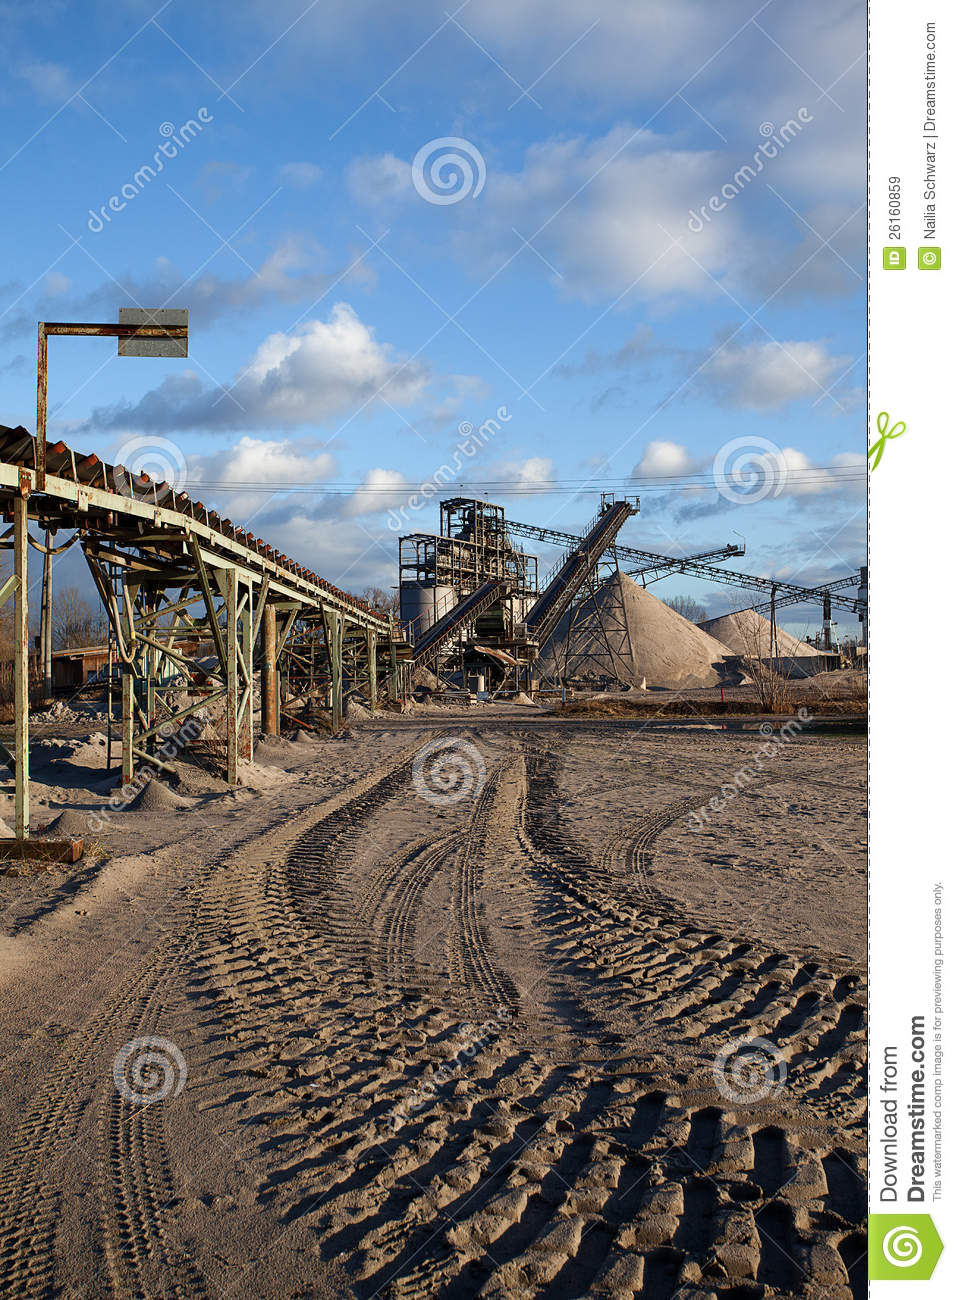 Open Pit Mining For Sand And Gravel Royalty Free Stock Images Image 26160859